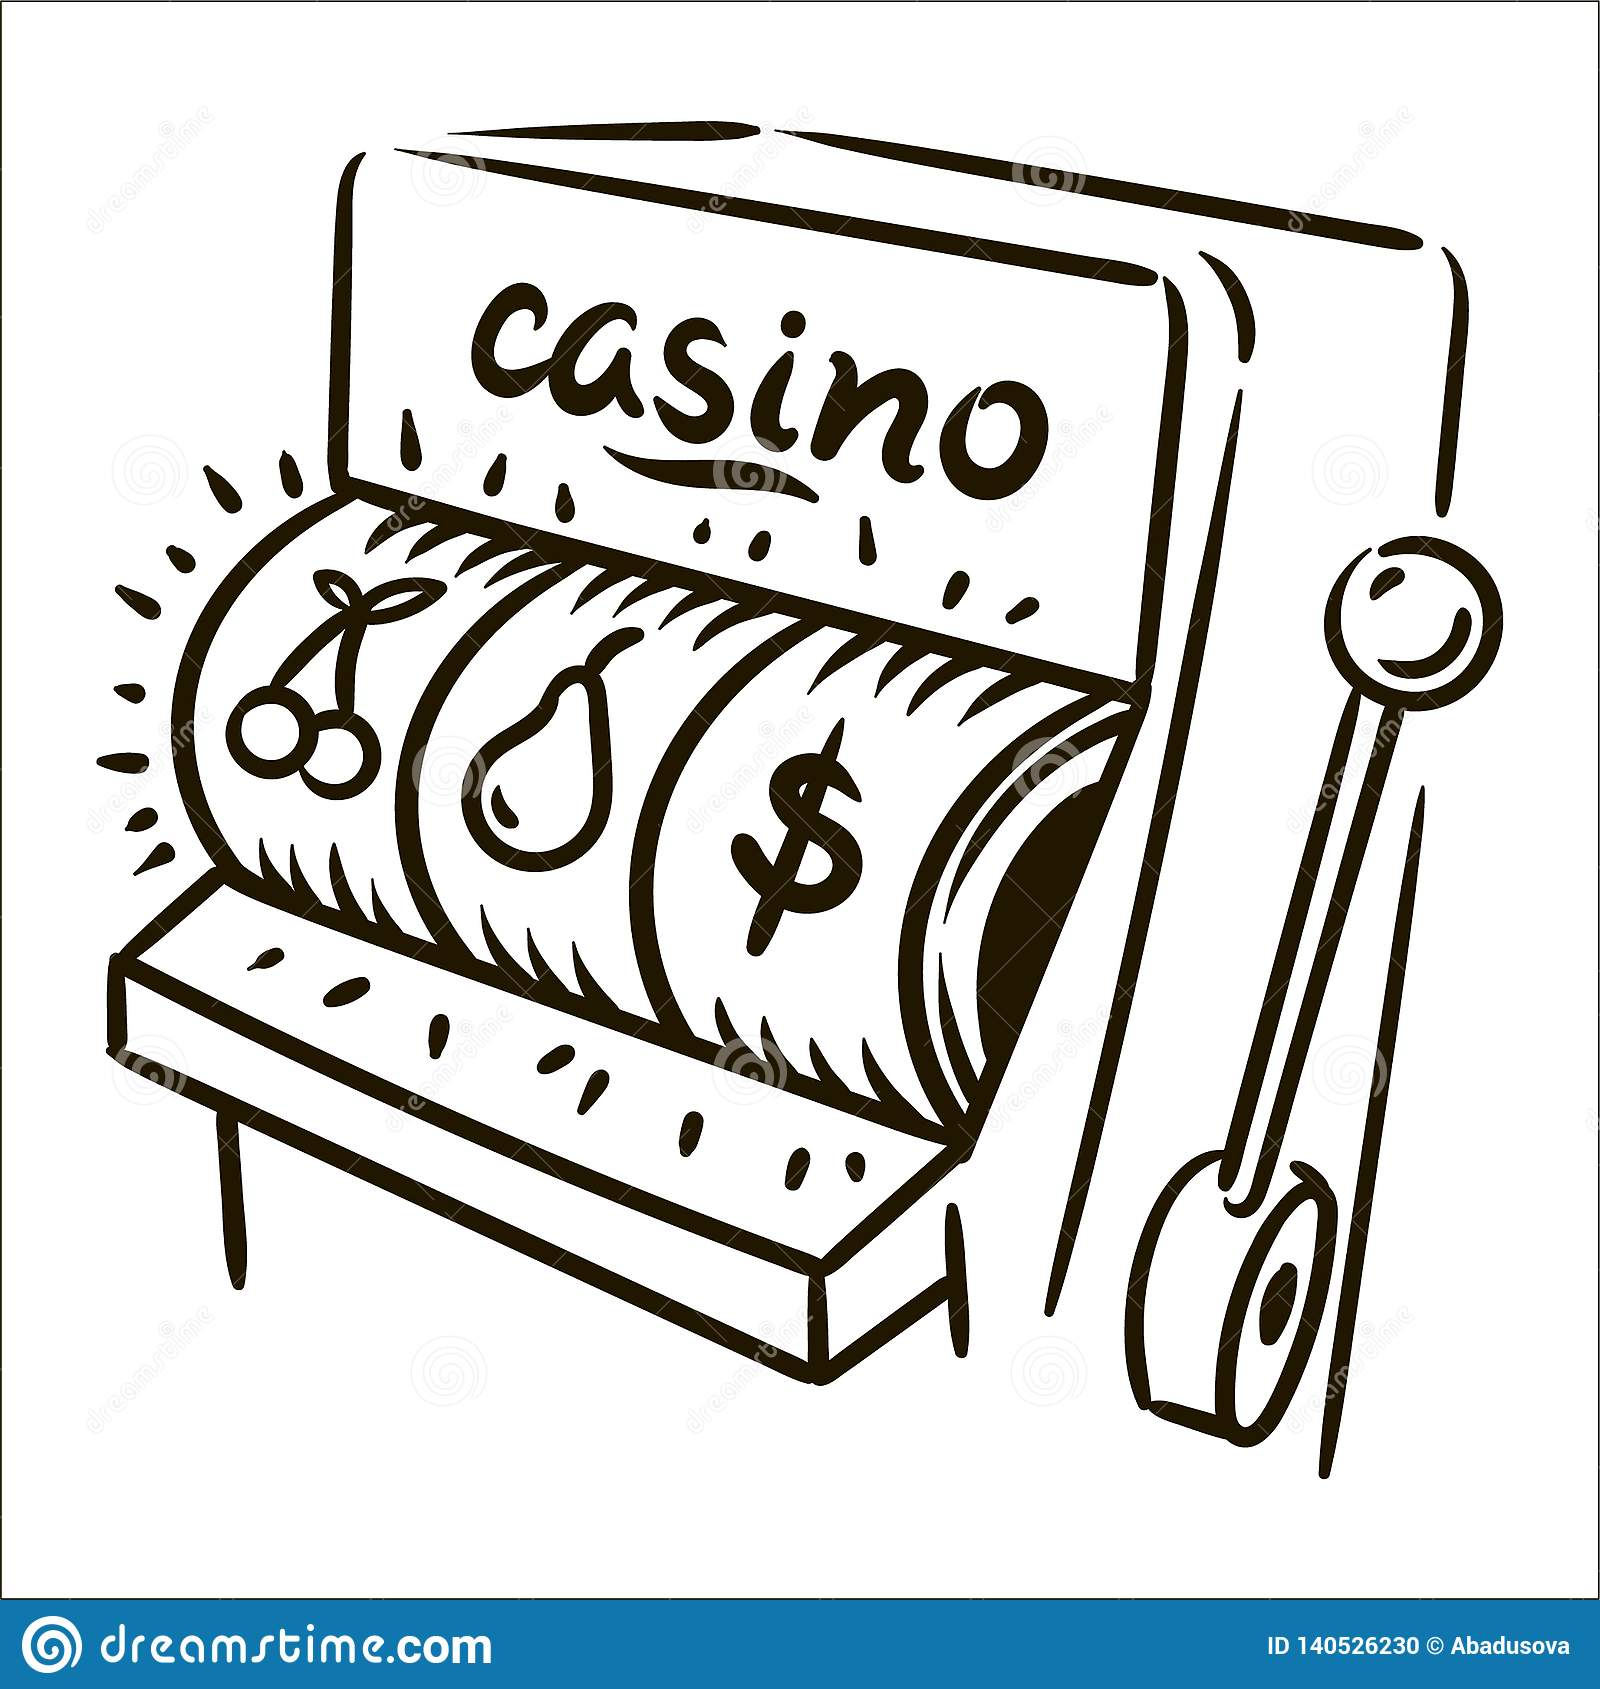 Vector hand drawn casino simple sketch illustration on white background.